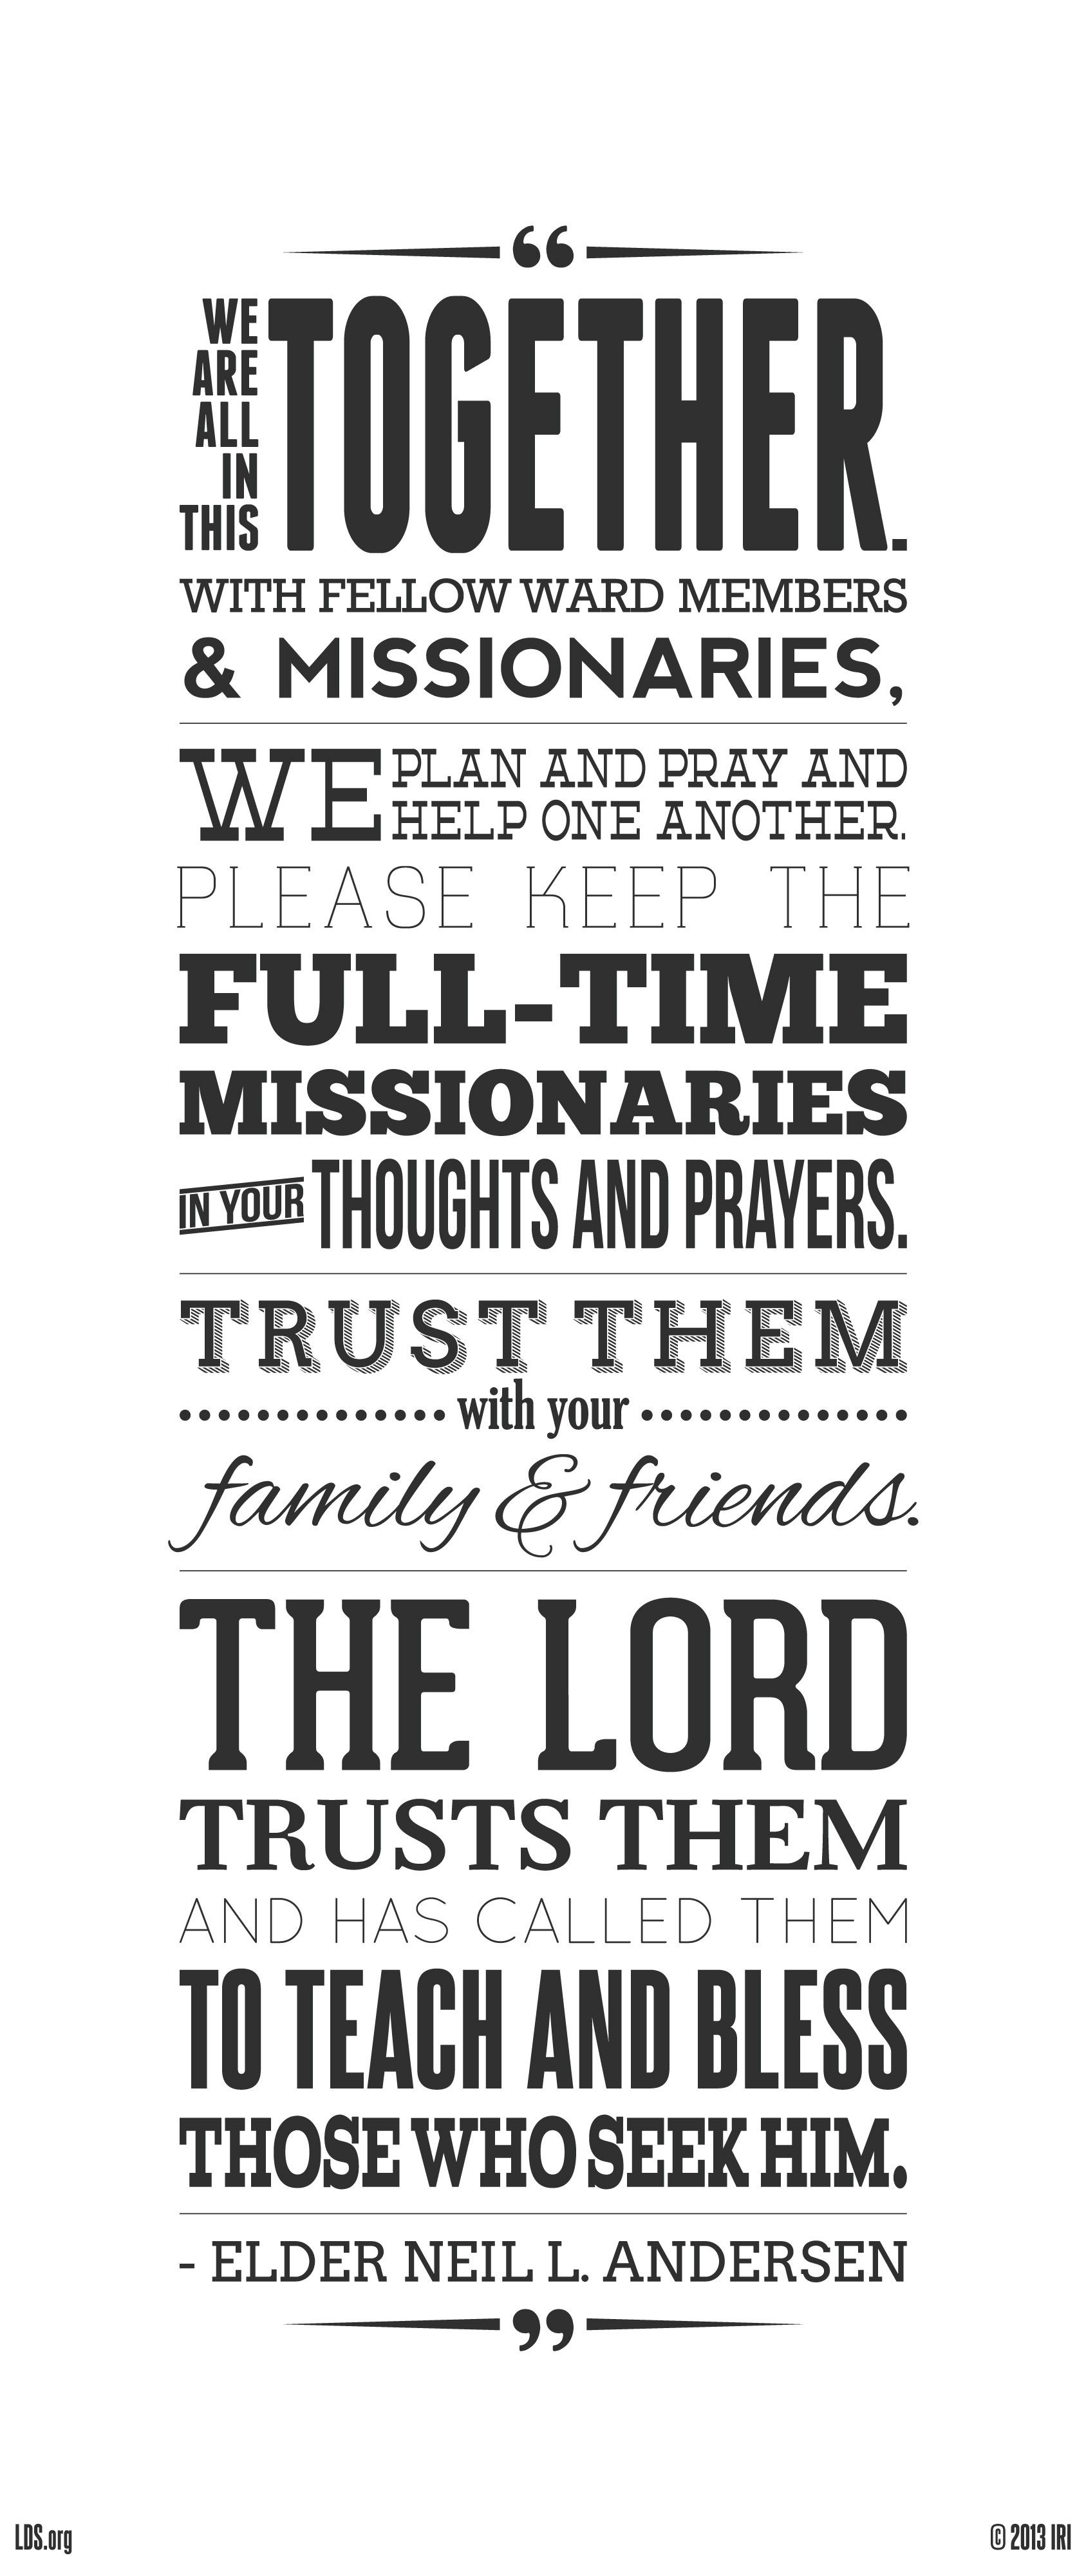 """""""We are all in this together. With fellow ward members and missionaries, we plan and pray and help one another. Please keep the full-time missionaries in your thoughts and prayers. Trust them with your family and friends. The Lord trusts them and has called them to teach and bless those who seek Him.""""—Elder Neil L. Andersen, """"It's a Miracle"""""""